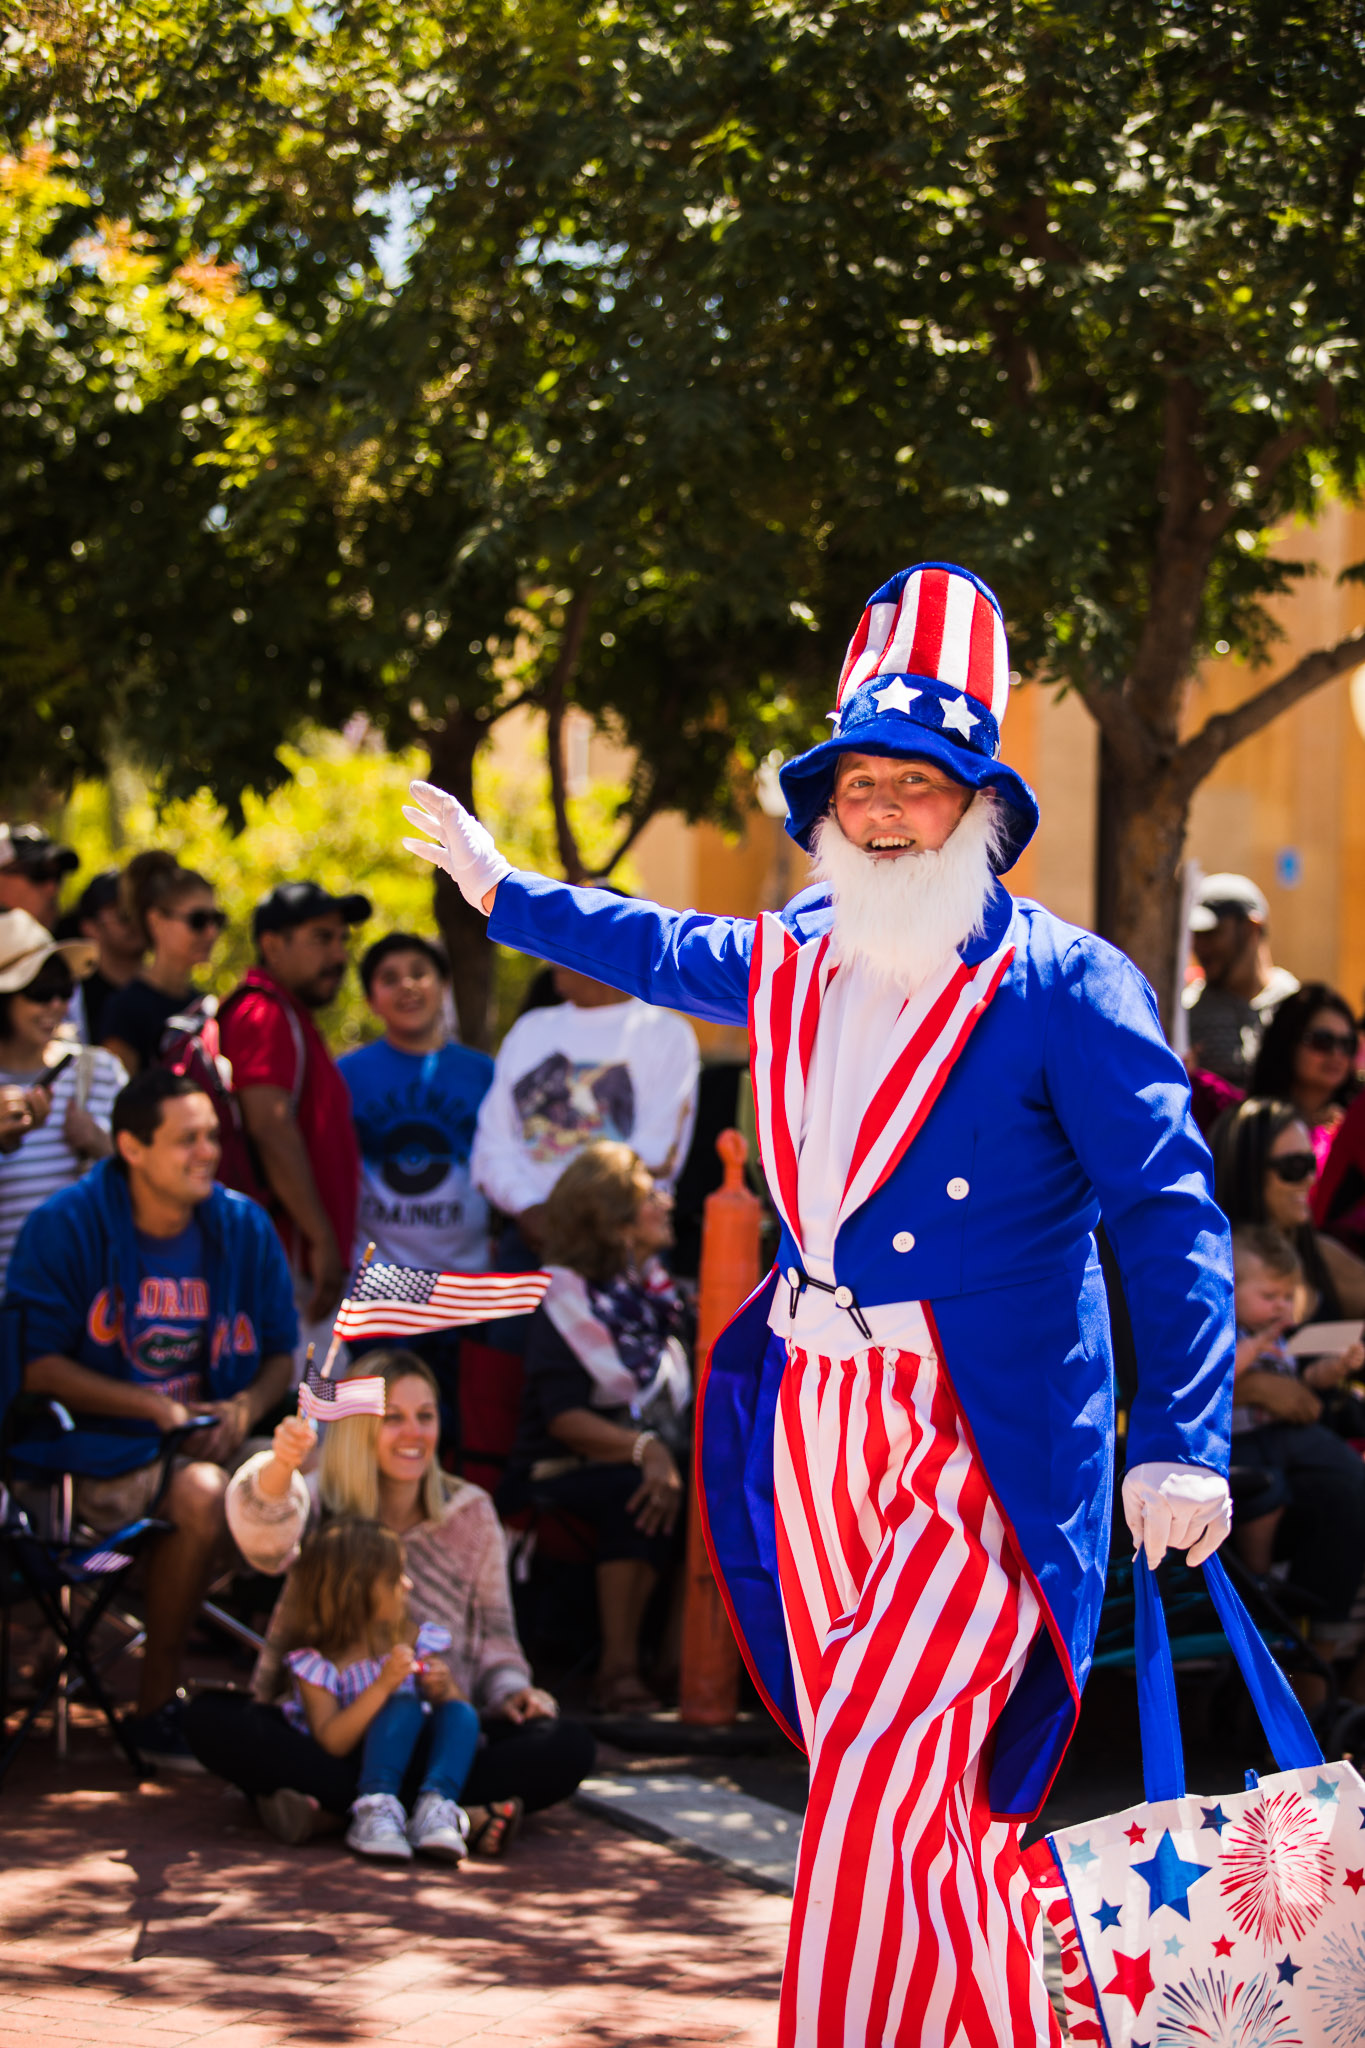 Archer_Inspired_Photography_Morgan_Hill_California_4th_of_july_parade-155.jpg